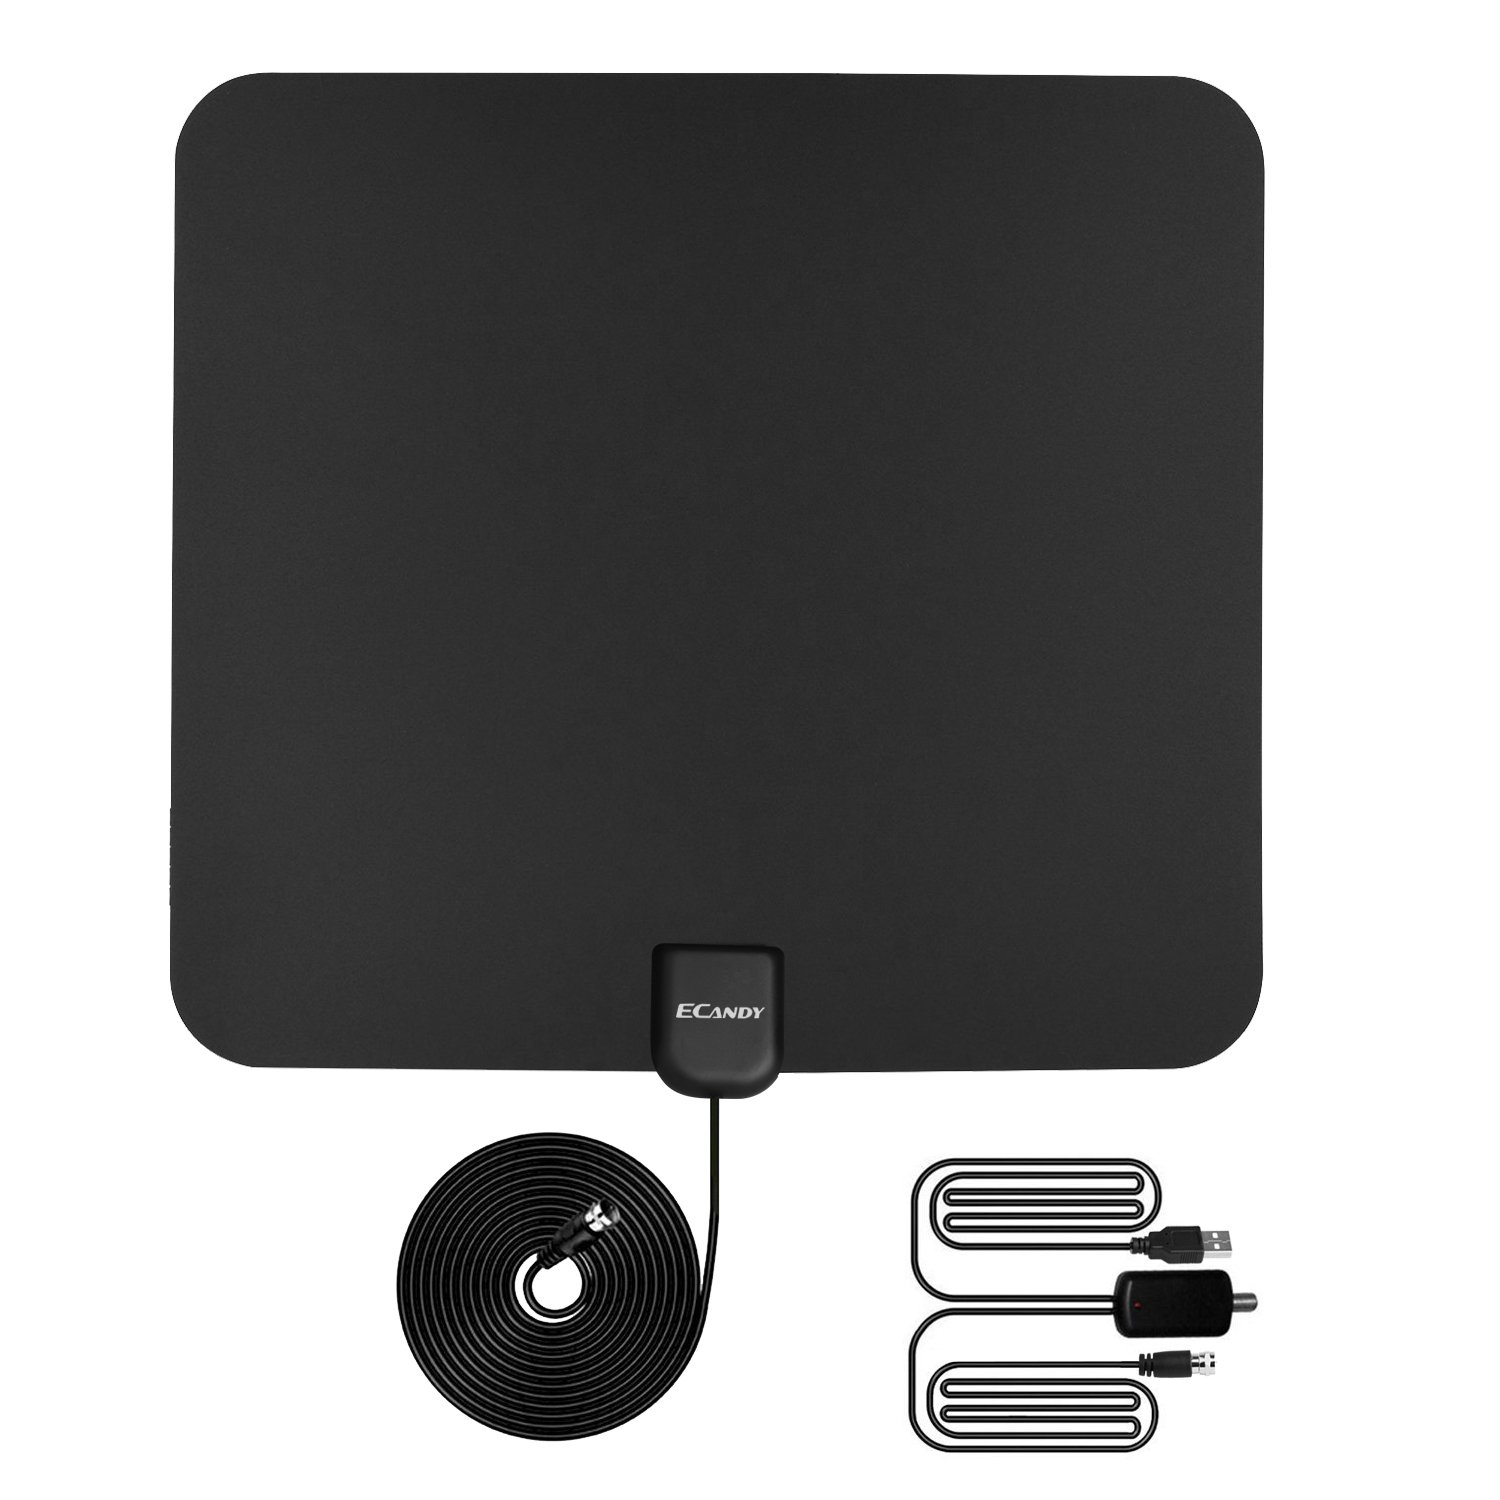 Ecandy 1080P Amplified HDTV Antenna- 50 Miles HDTV Indoor Antenna With Detachable Amplifier Signal Booster,High Reception Homeworx Antenna with 13ft Coaxial Cable for TV (Black)